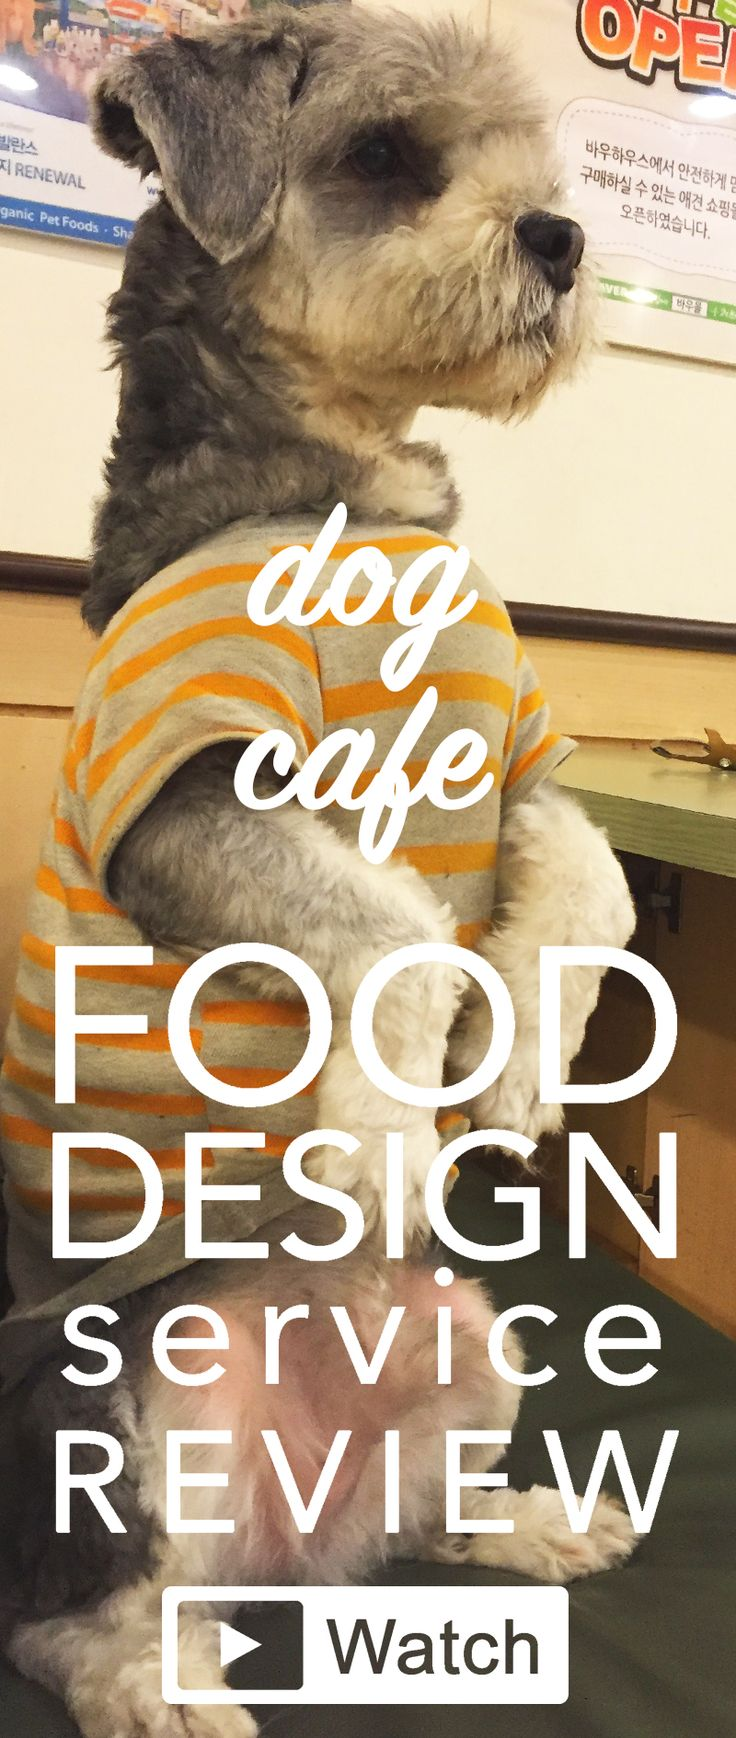 Food Design Service Review: Watch my video review here: http://francesca-zampollo.com/a-dog-cafe-in-seoul/